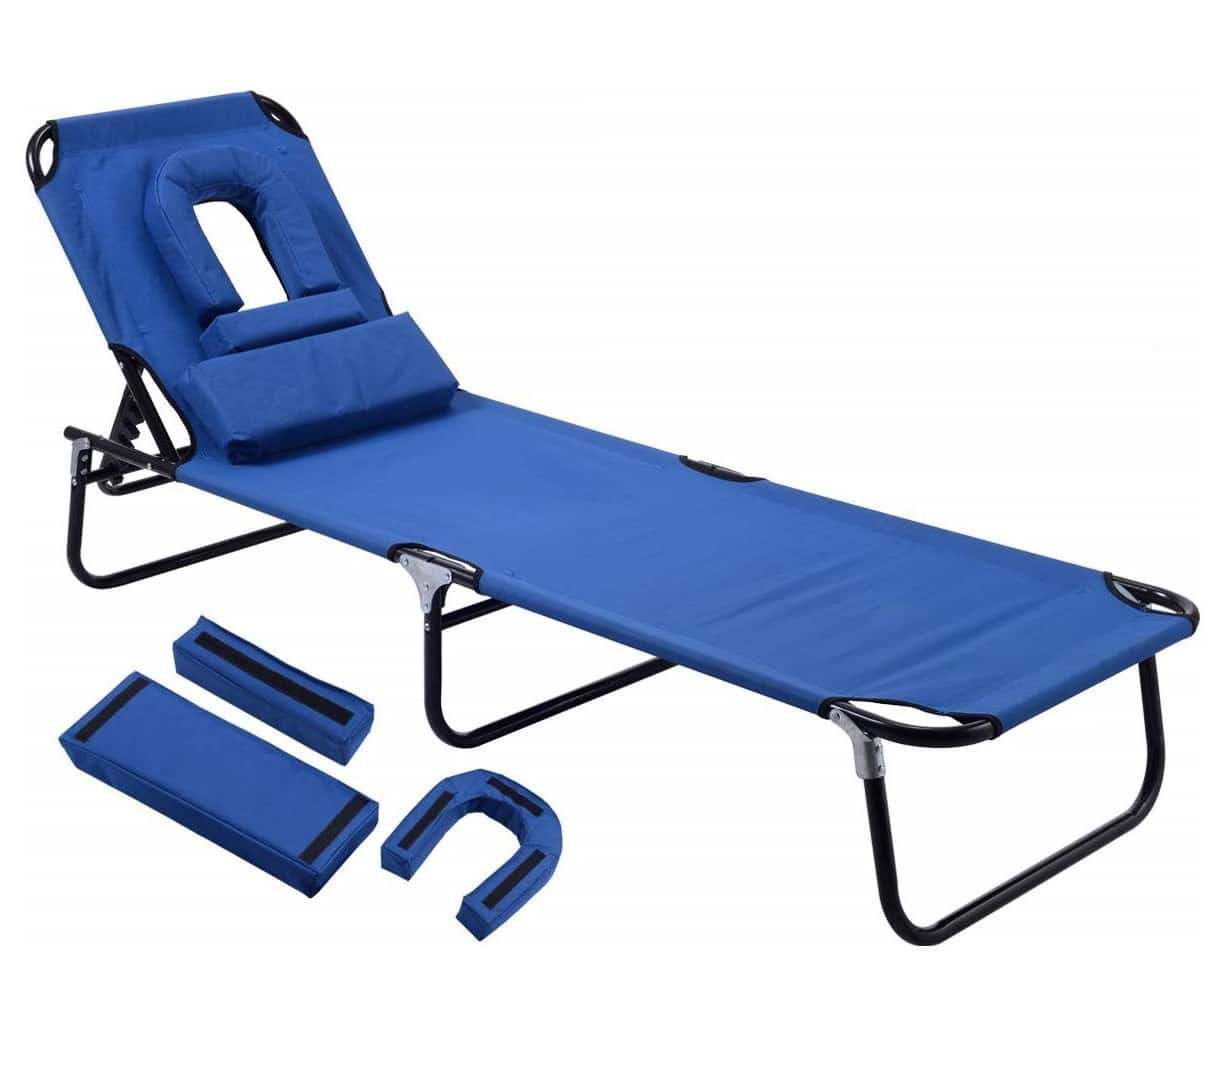 13. Gymax Outdoor Lounge Chair with Face Hole - Best Adjustable Reclining Folding Lounge Chairs